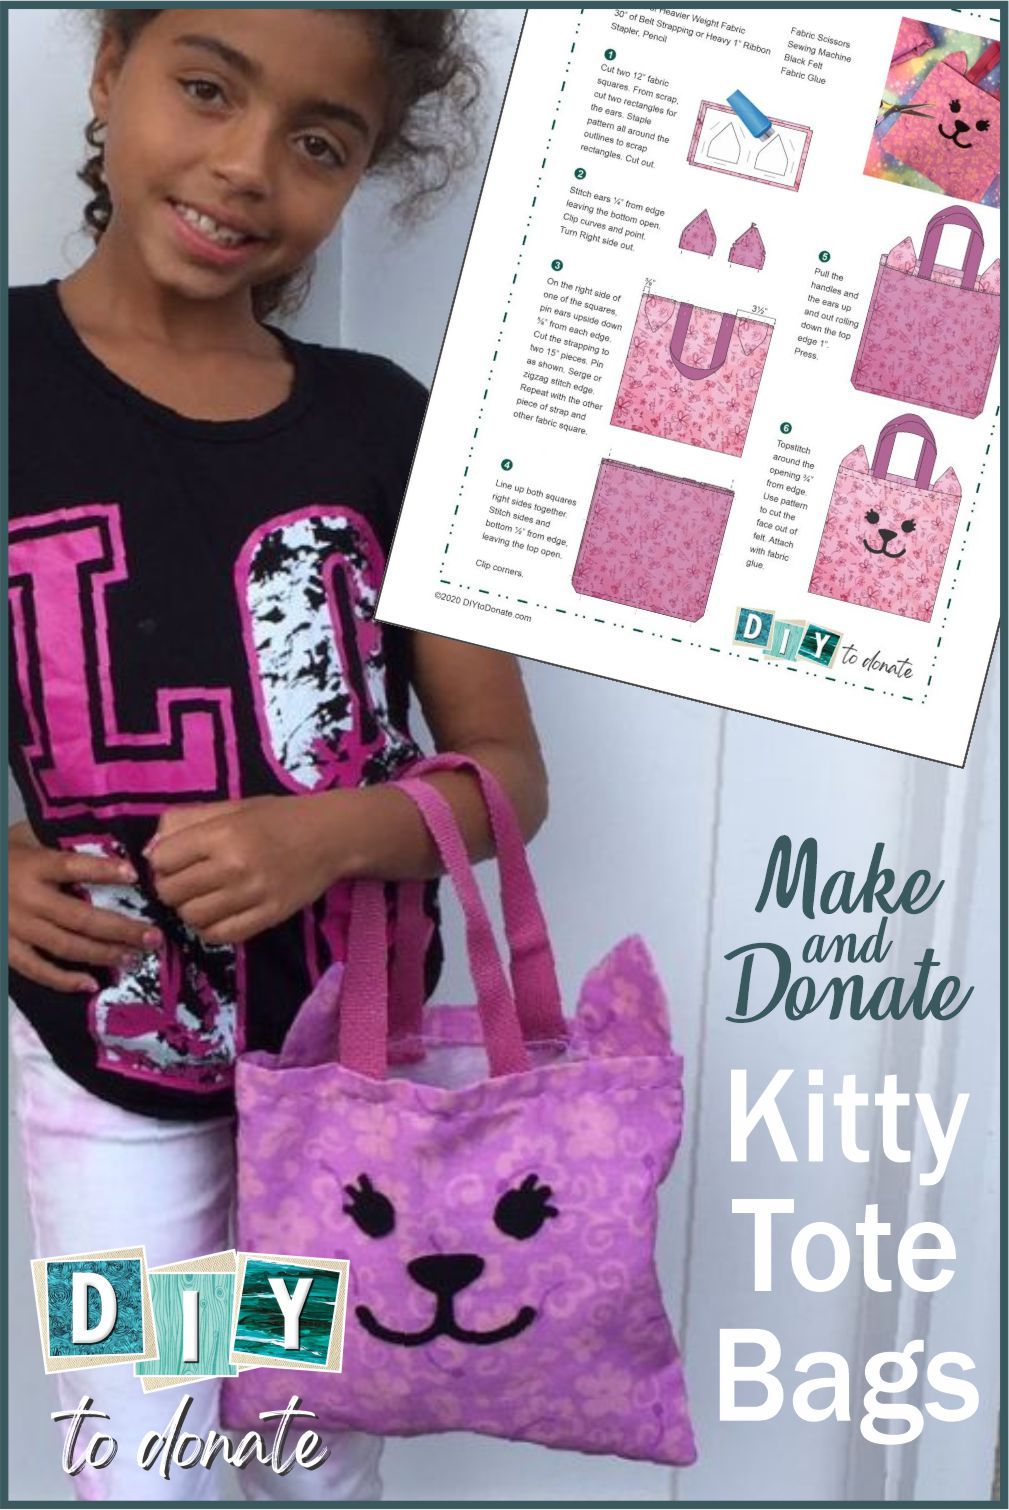 So cute and sew easy, this DIY cat face tote is something beginner sewers can make. We have free PDF pattern and SVG file. #diytodonate #diy #communityservice #donate #donation #giveback #freepdf #freesvg #community #communityhelpers